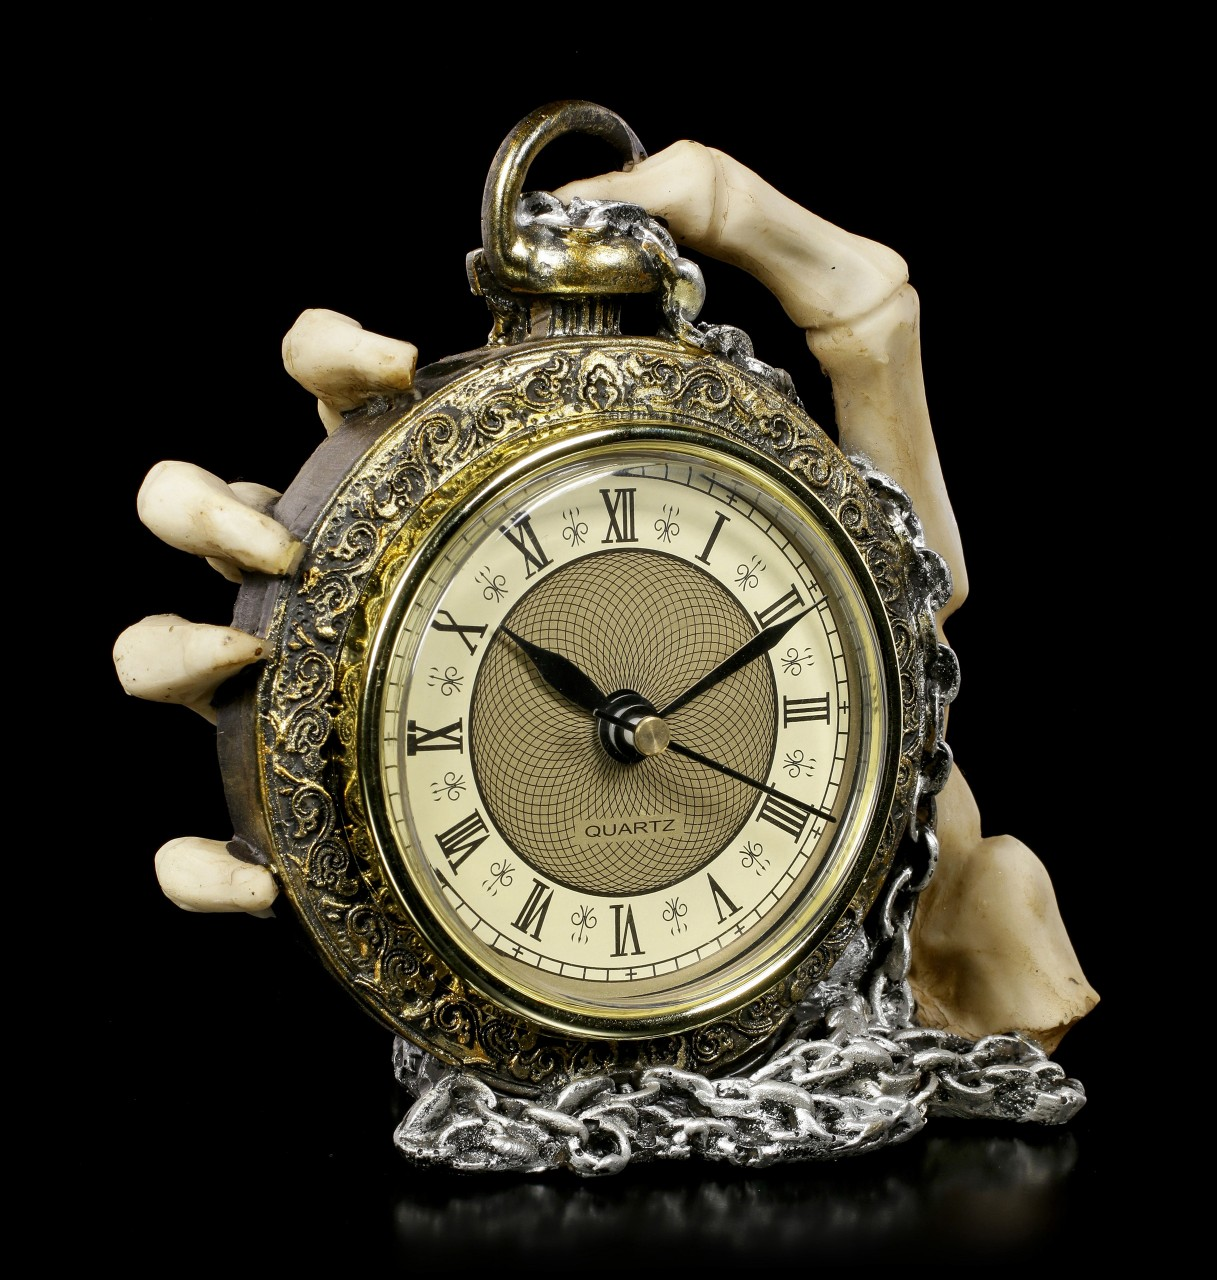 Tischuhr Skeletthand - About Time